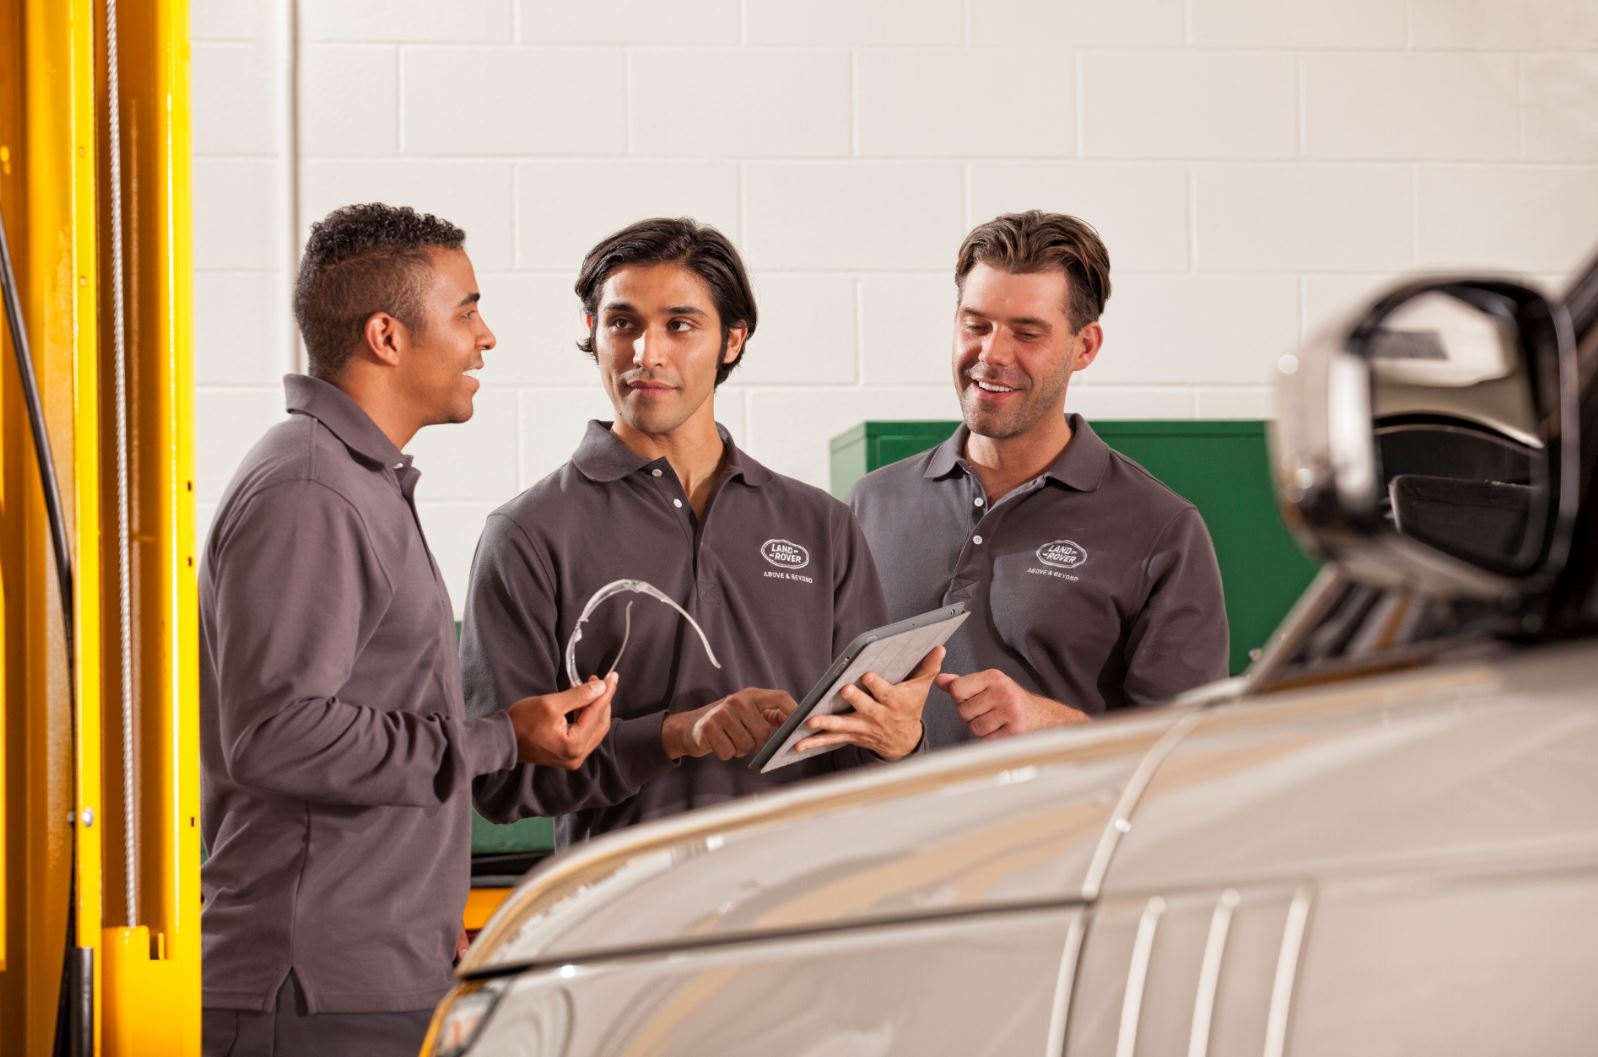 Land Rover Repair and Maintenance in Fairfield, CT